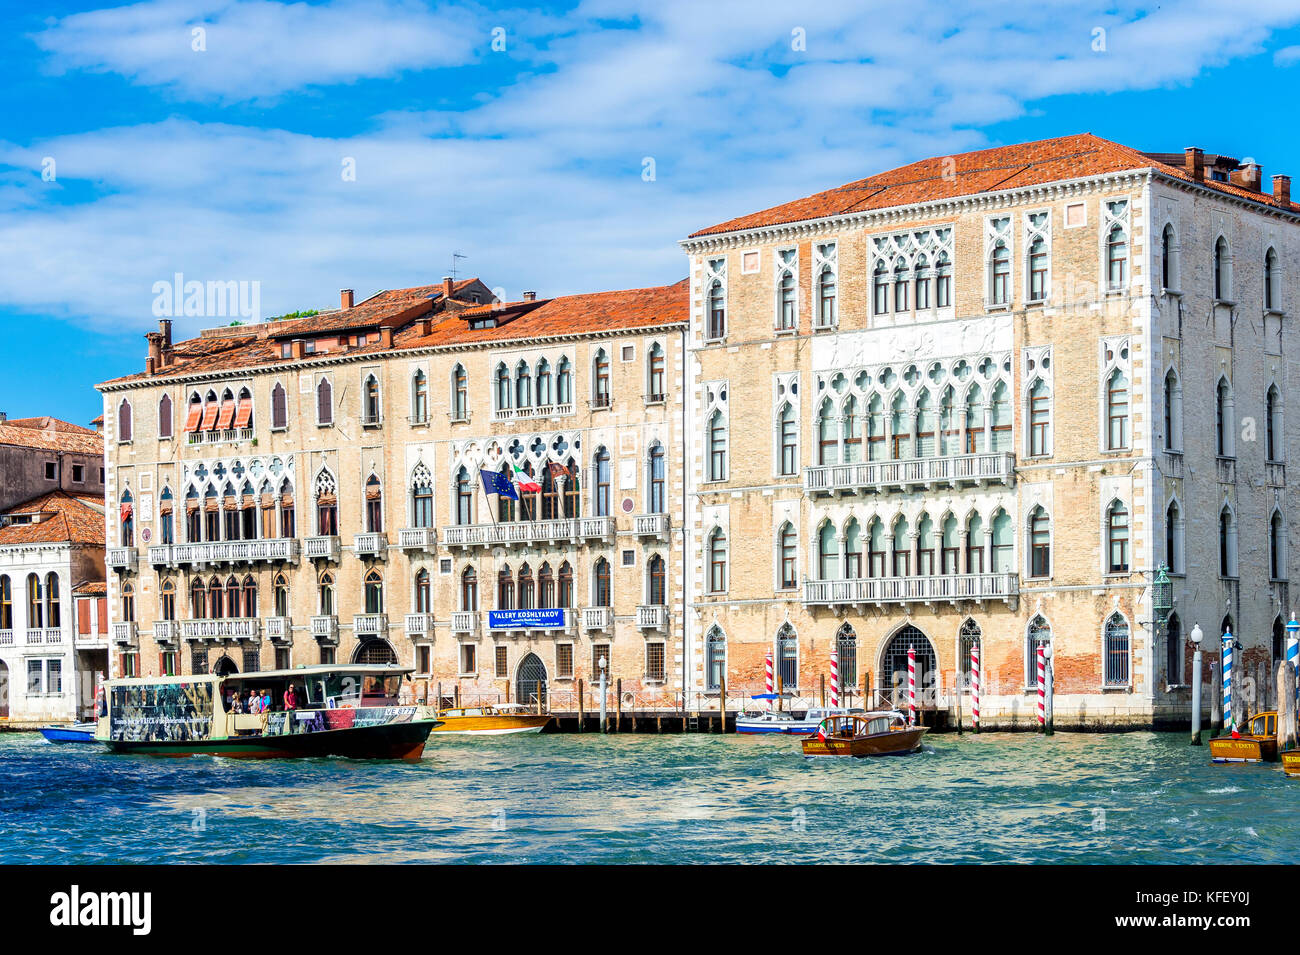 A vaporetto on the Grand Canal in Venice, Italy - Stock Image